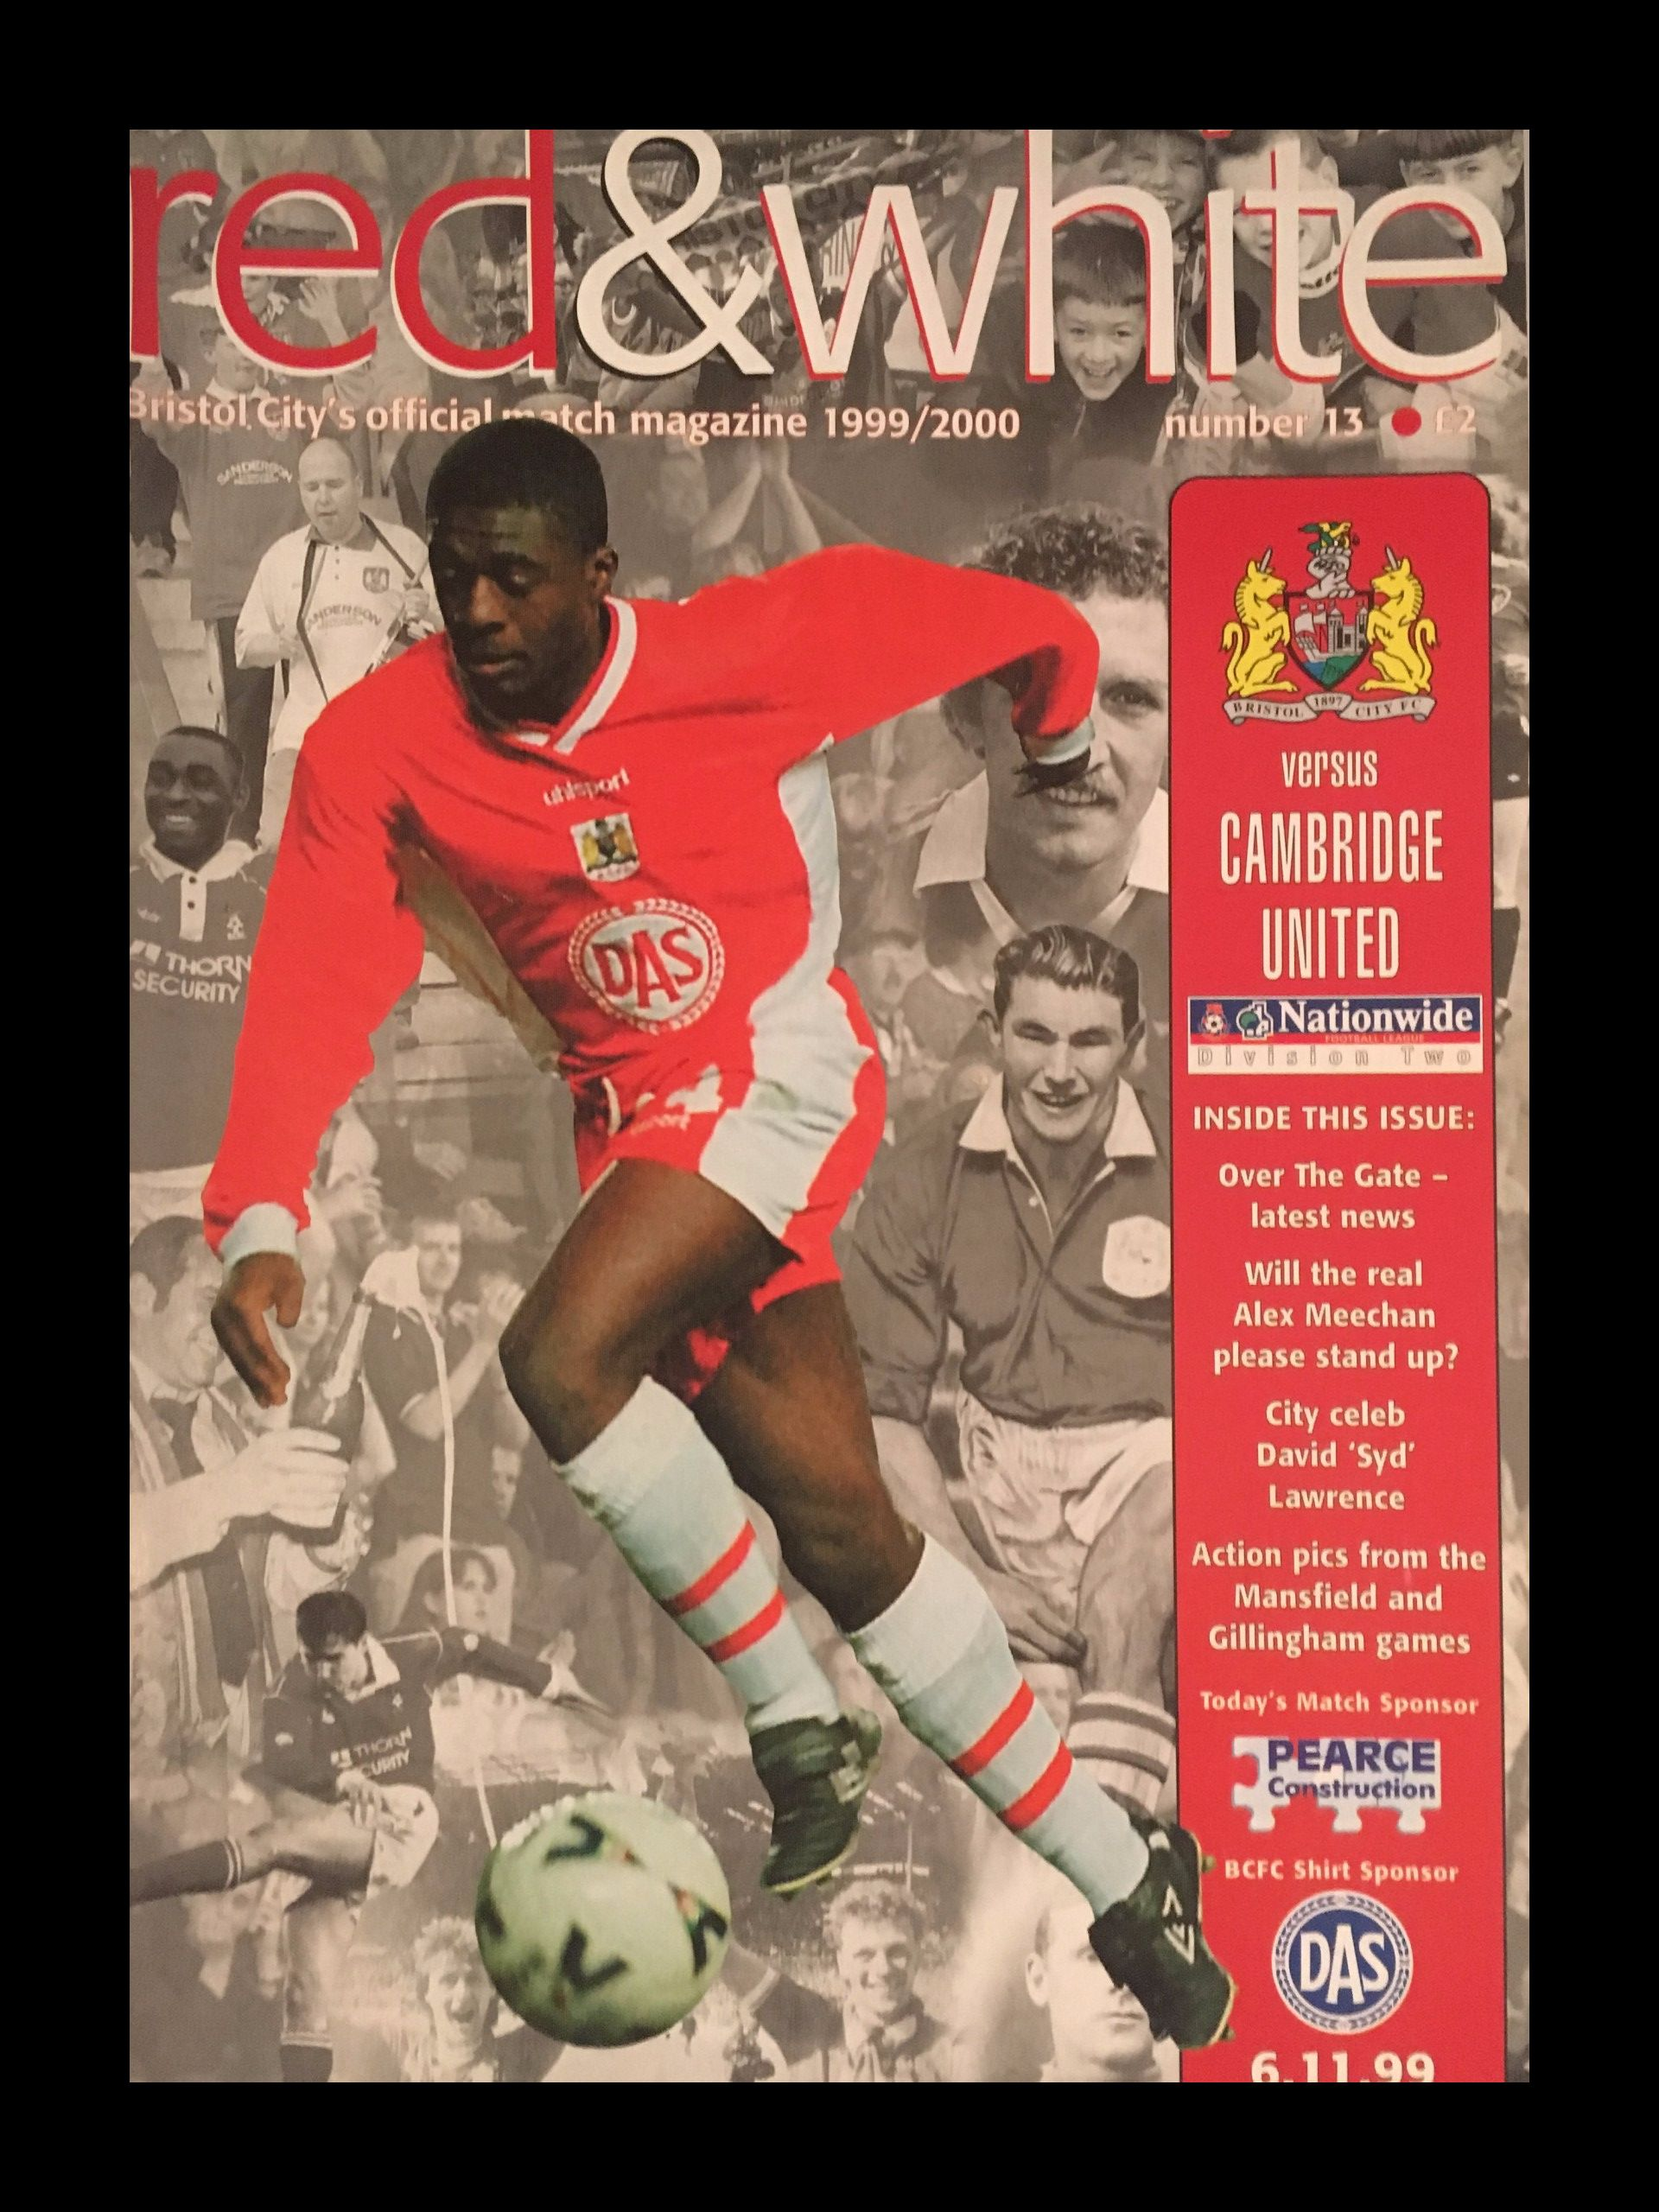 Bristol City v Cambridge United 06-11-1999 Programme